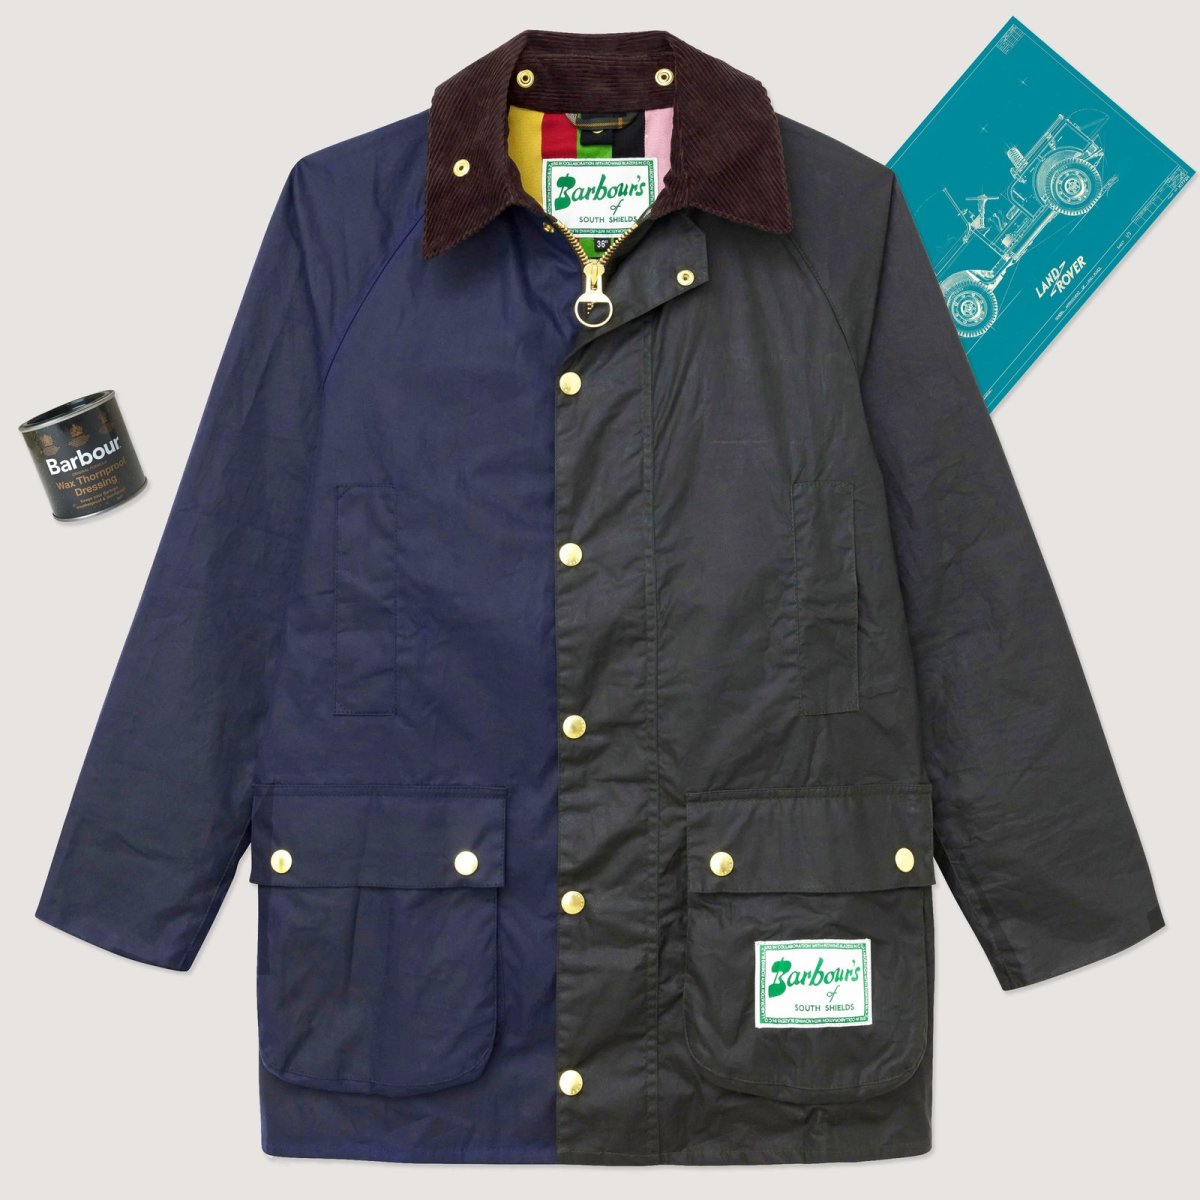 Rowing Blazers x Barbour